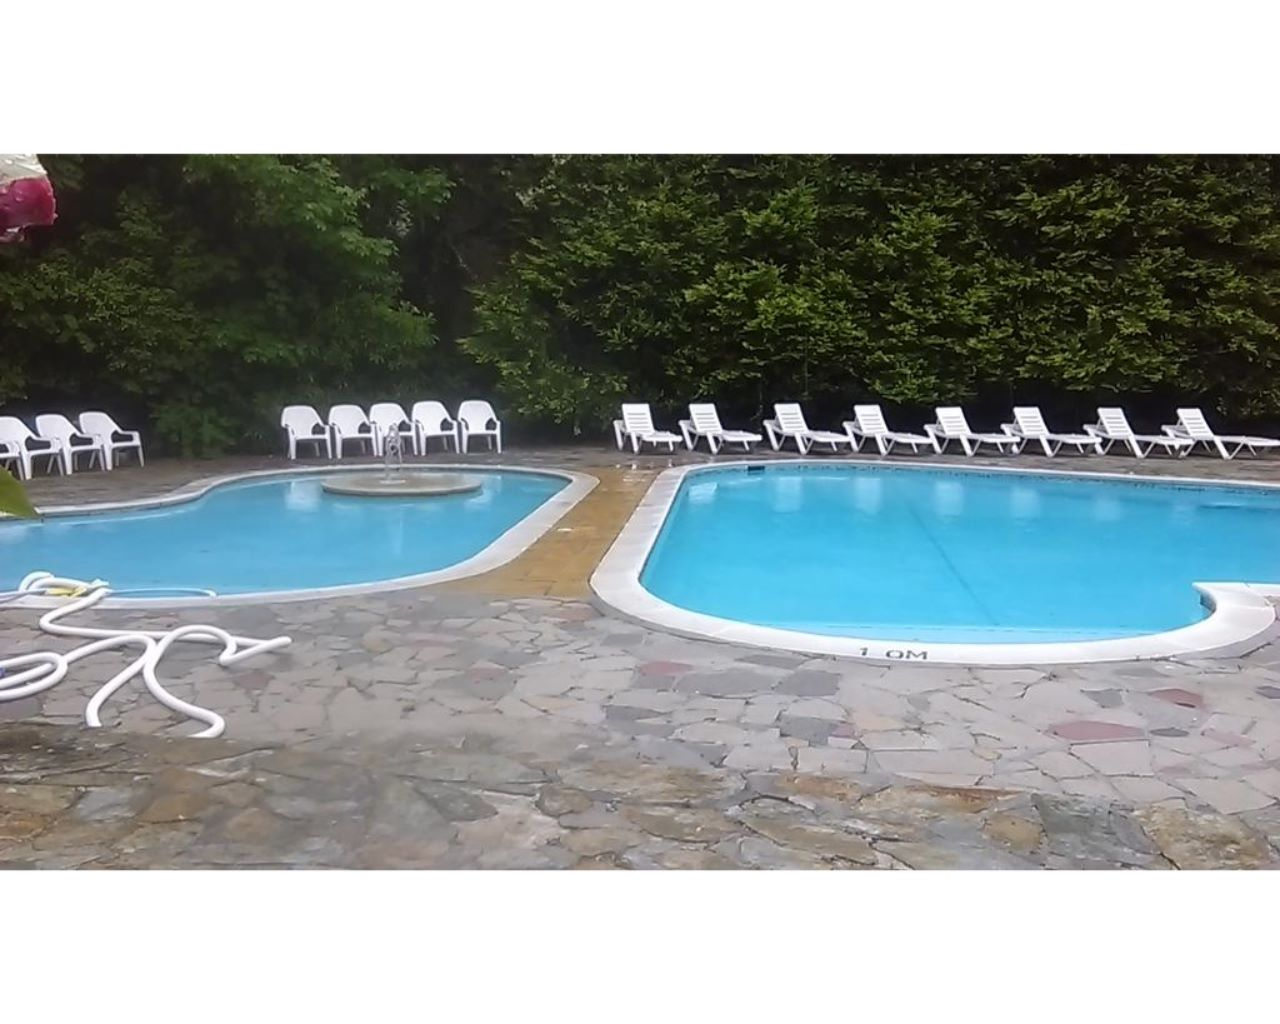 LANTEGLOS HOTEL AND VILLAS LIMITED - SWIMMING POOL POLICY  - Swimming Pool will be open between 29th May to the 4th September 2021